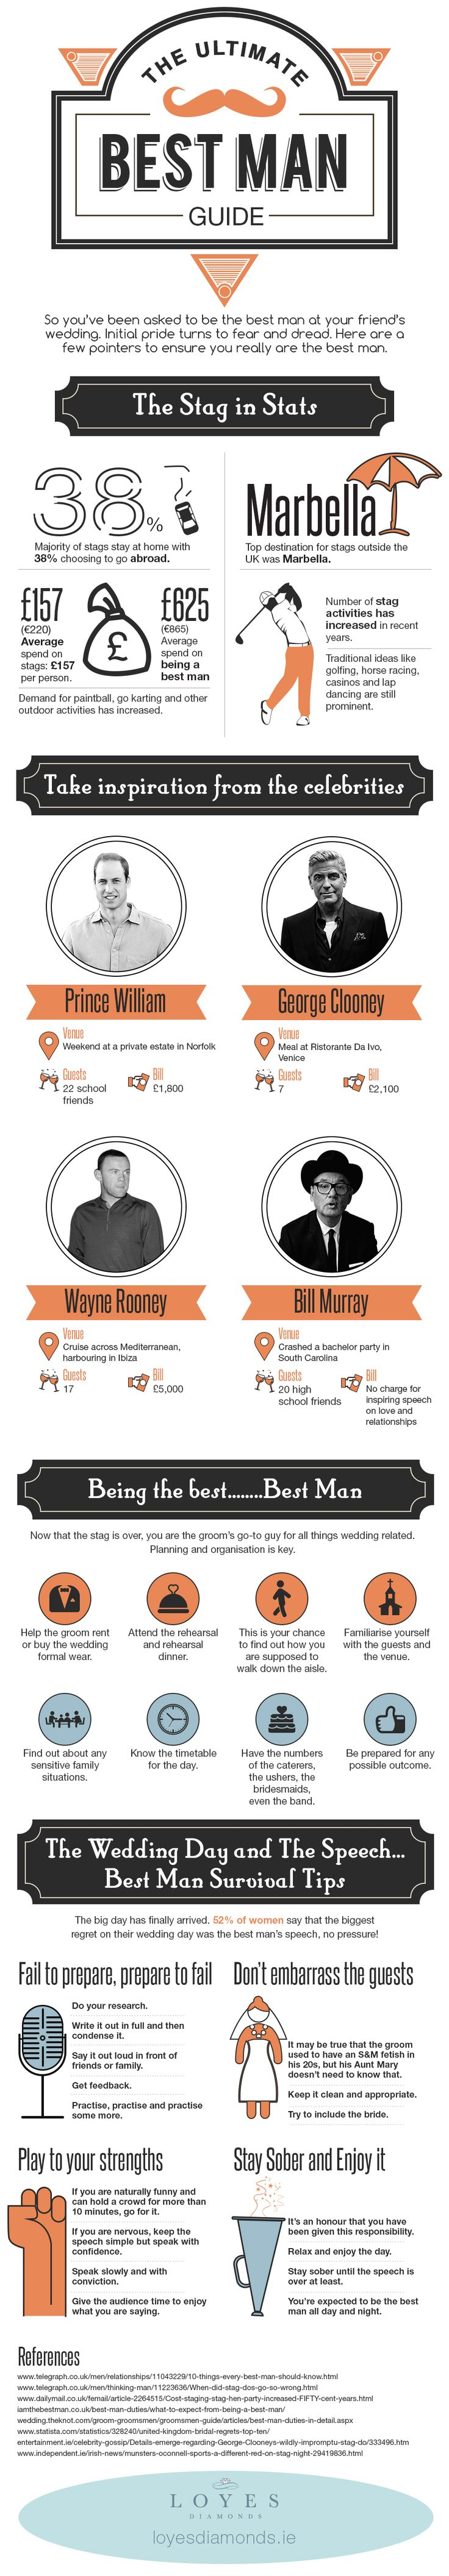 The Ultimate Best Man at a Wedding Guide [Infographic]